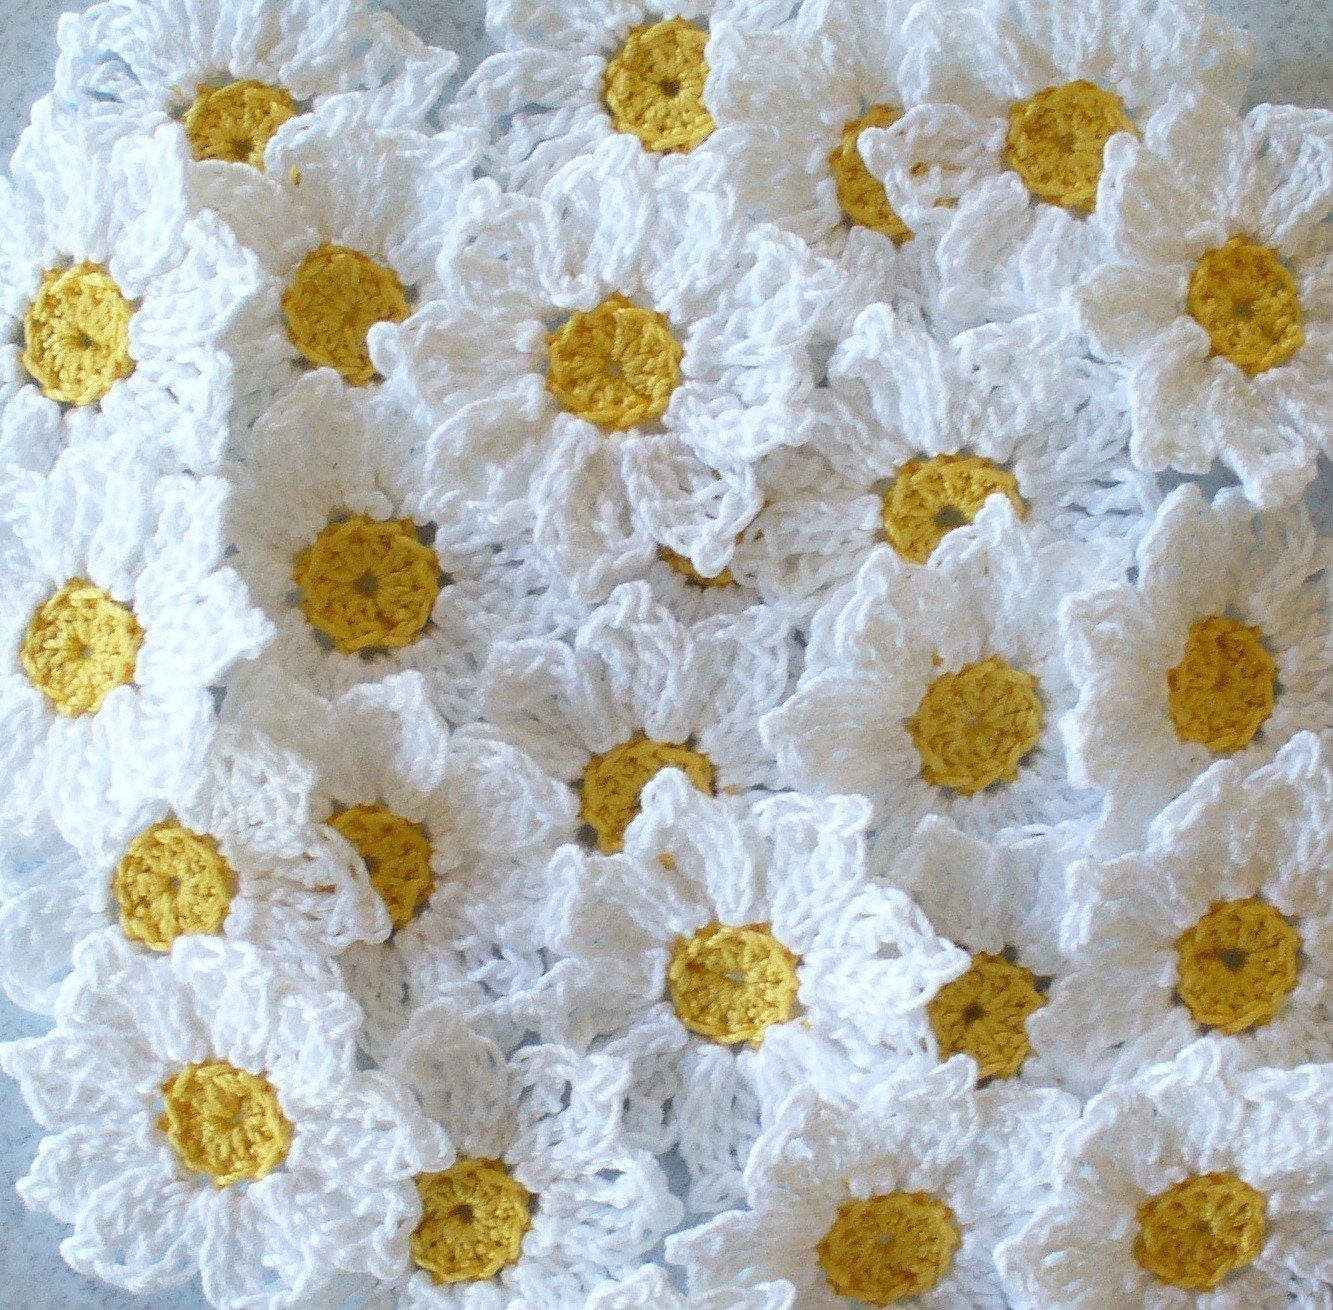 Crochet Daisy Flowers, Handmade, White, Yellow, Appliques - set of 16 - IreneStitches